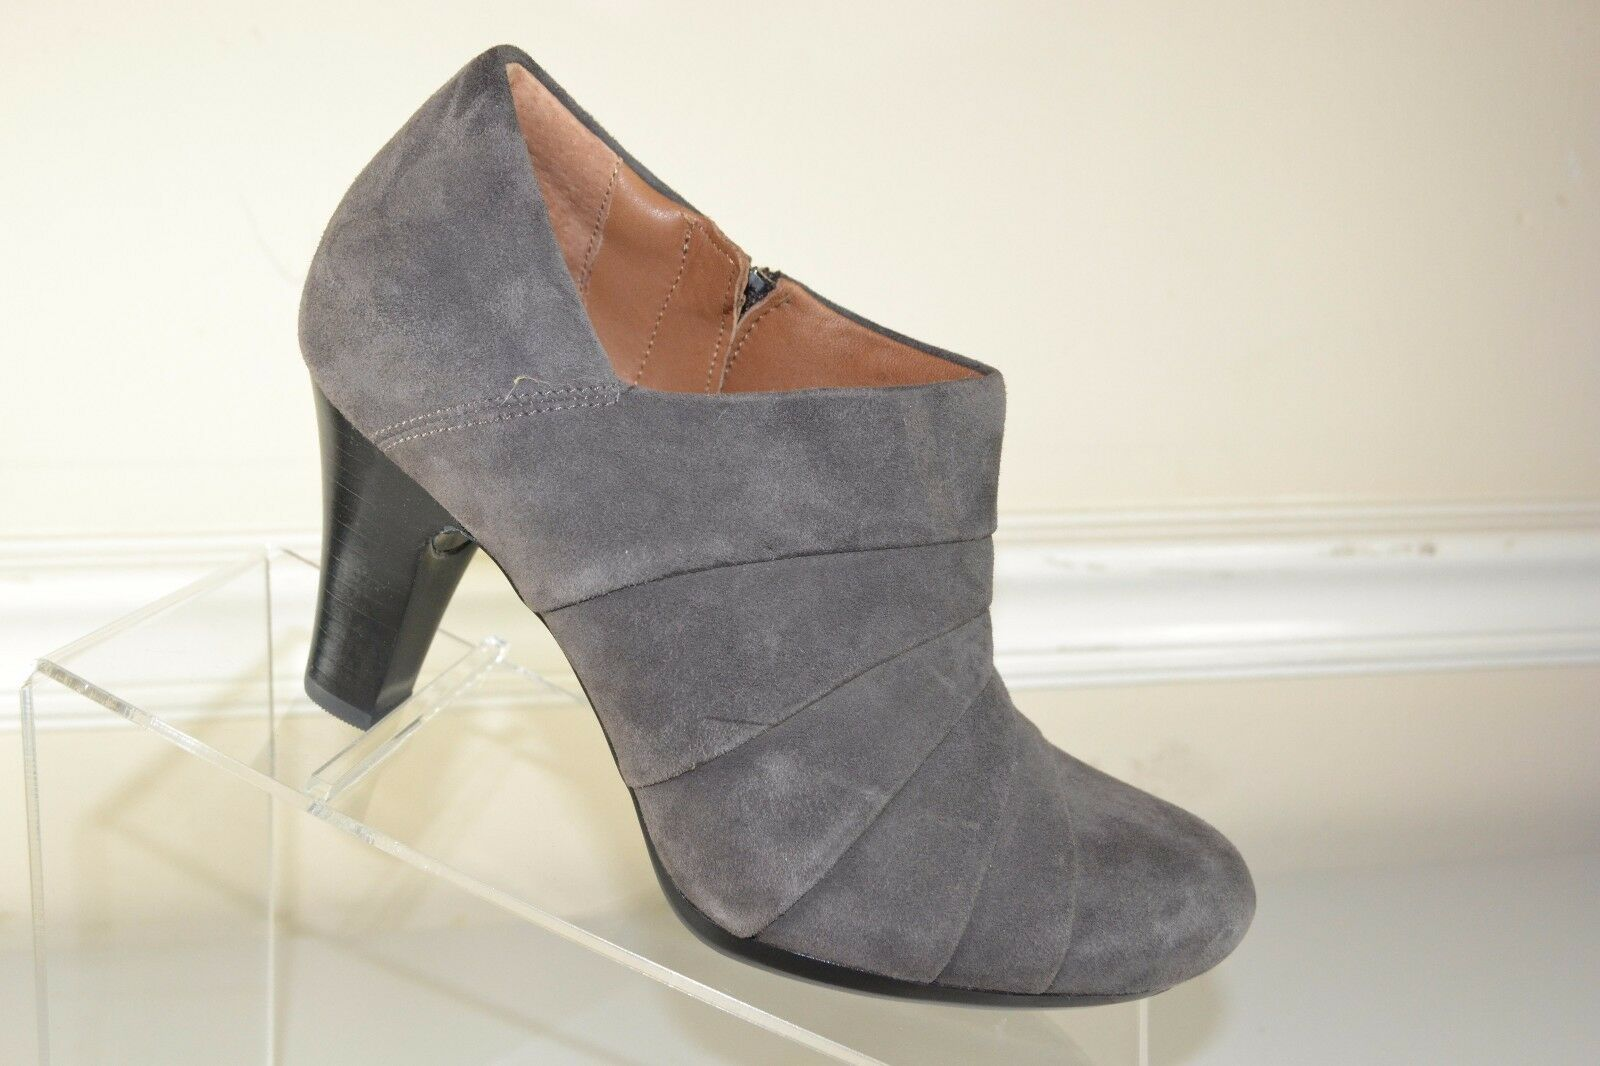 Clarks Artisan Ankle Boots - Side Zip - Sz 6 M